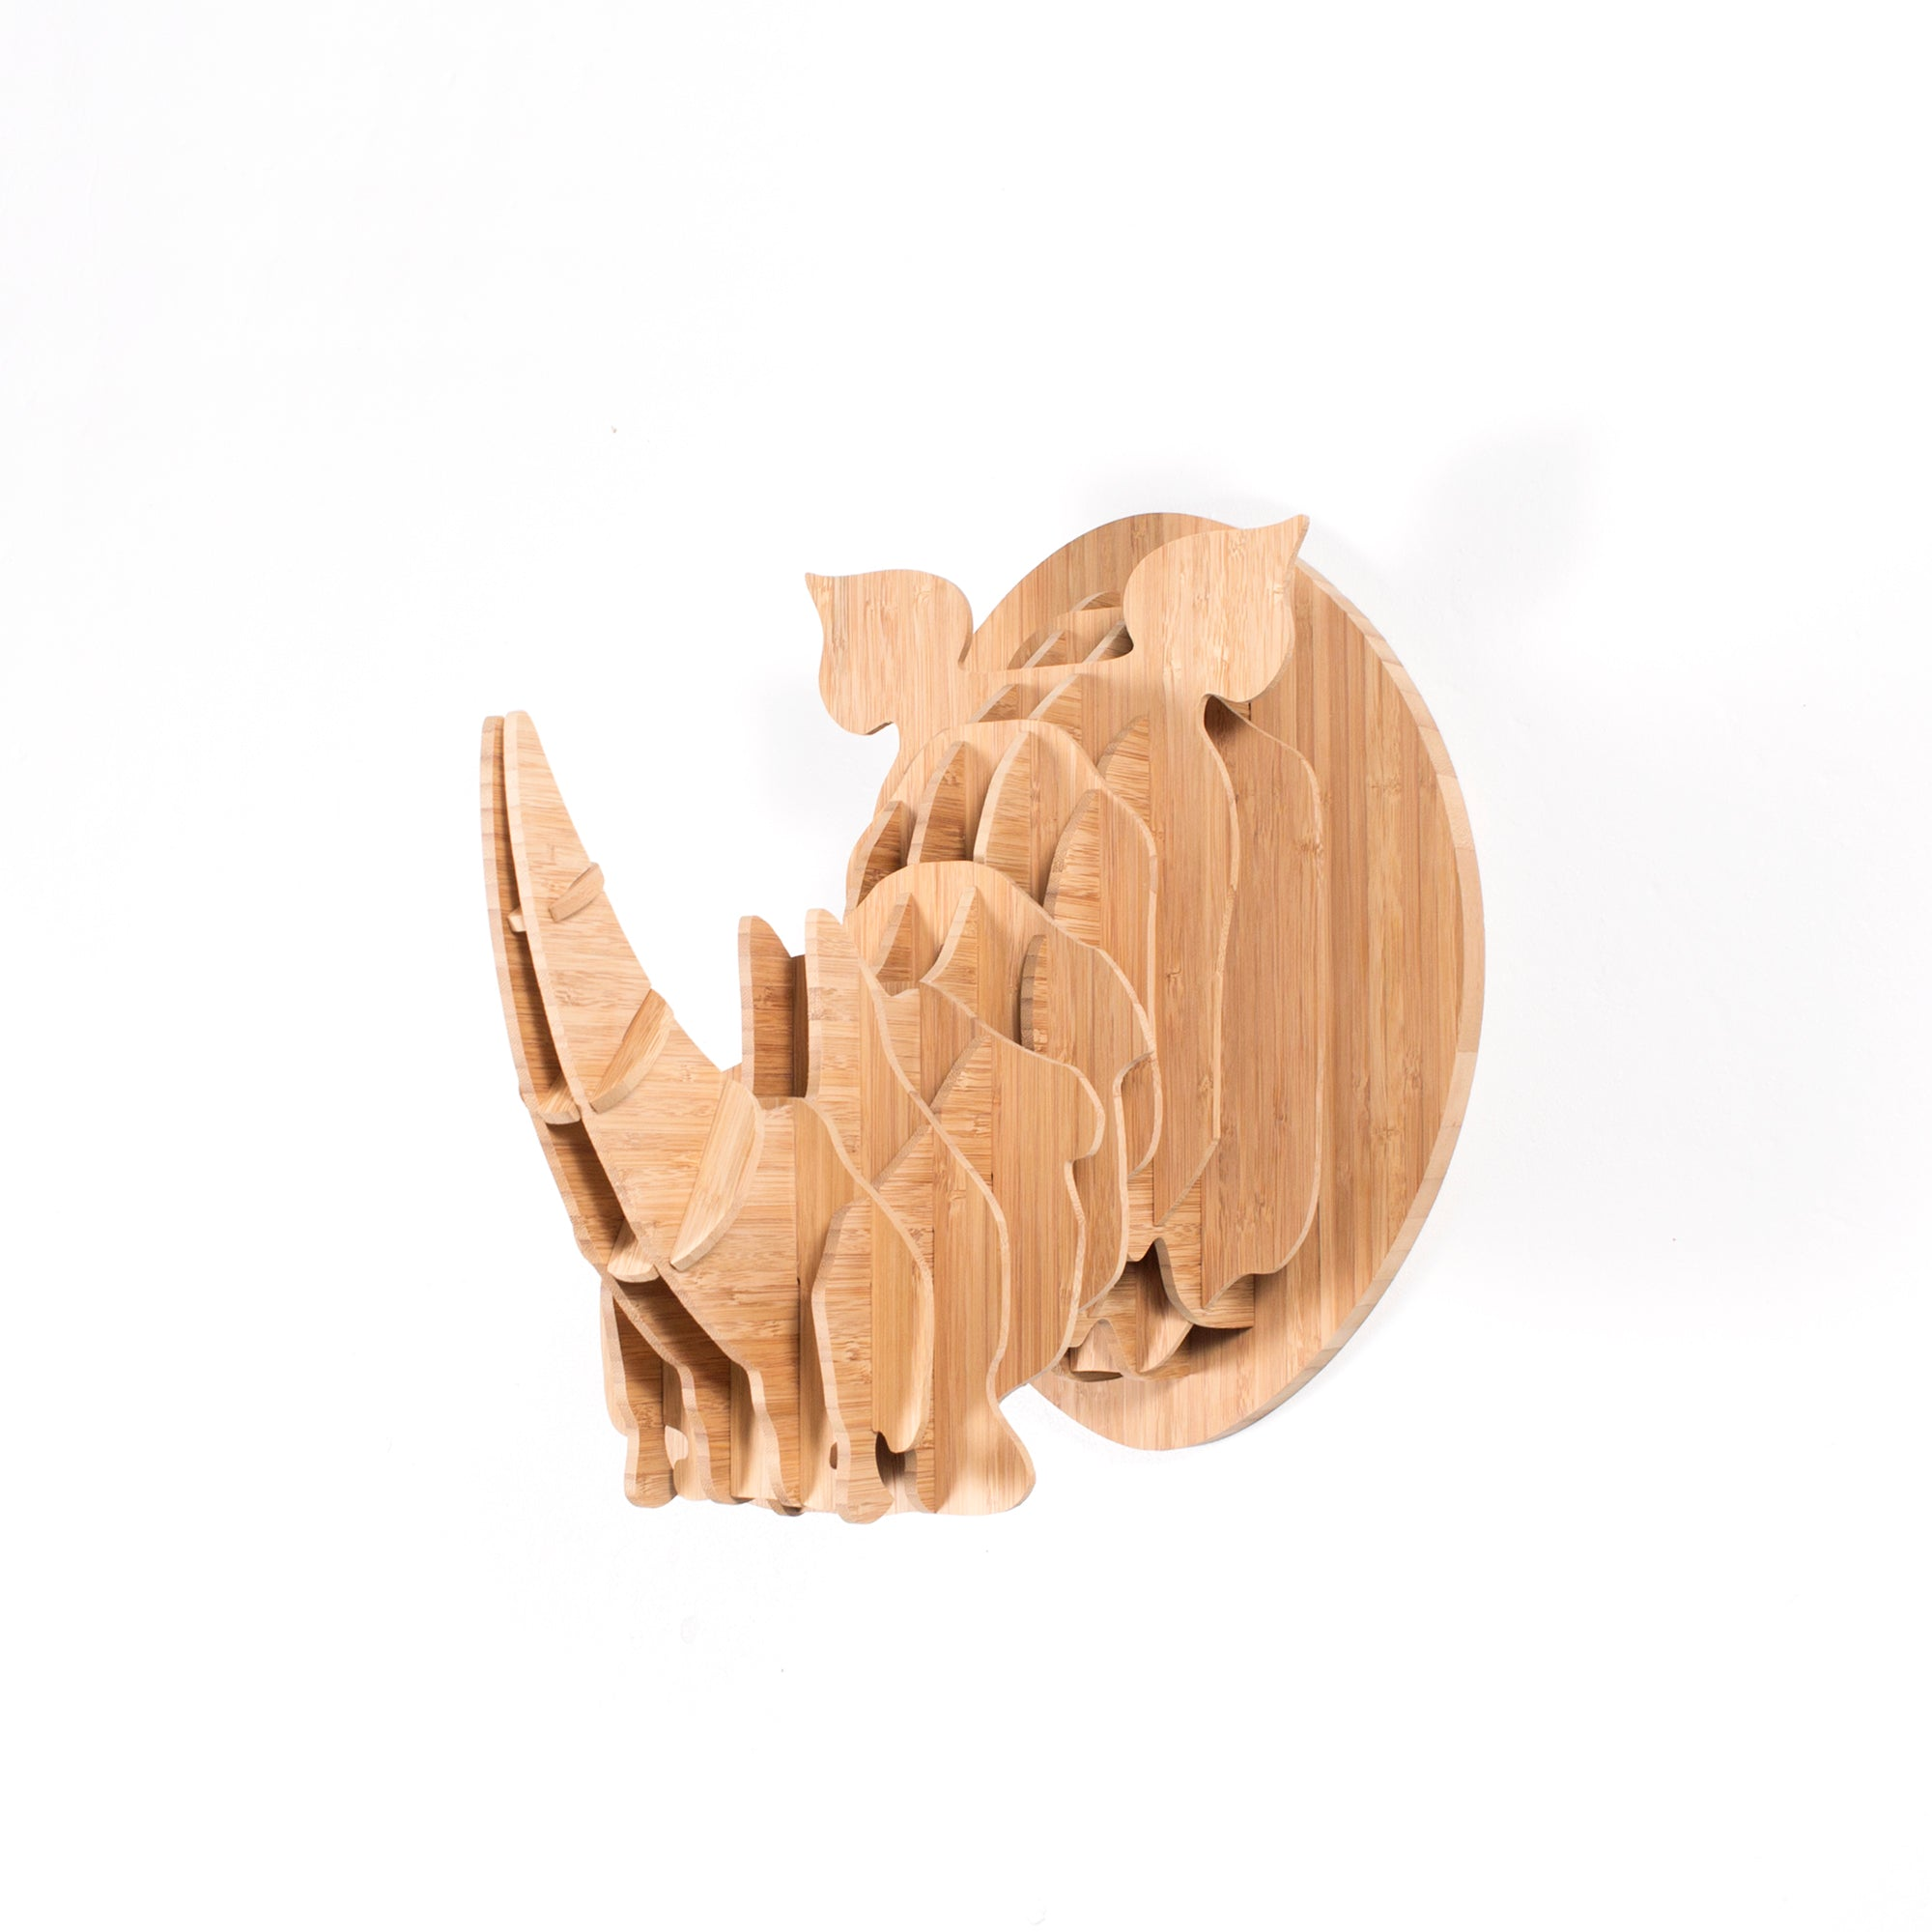 Rhino trophy head in bamboo, Head On design, flat packed